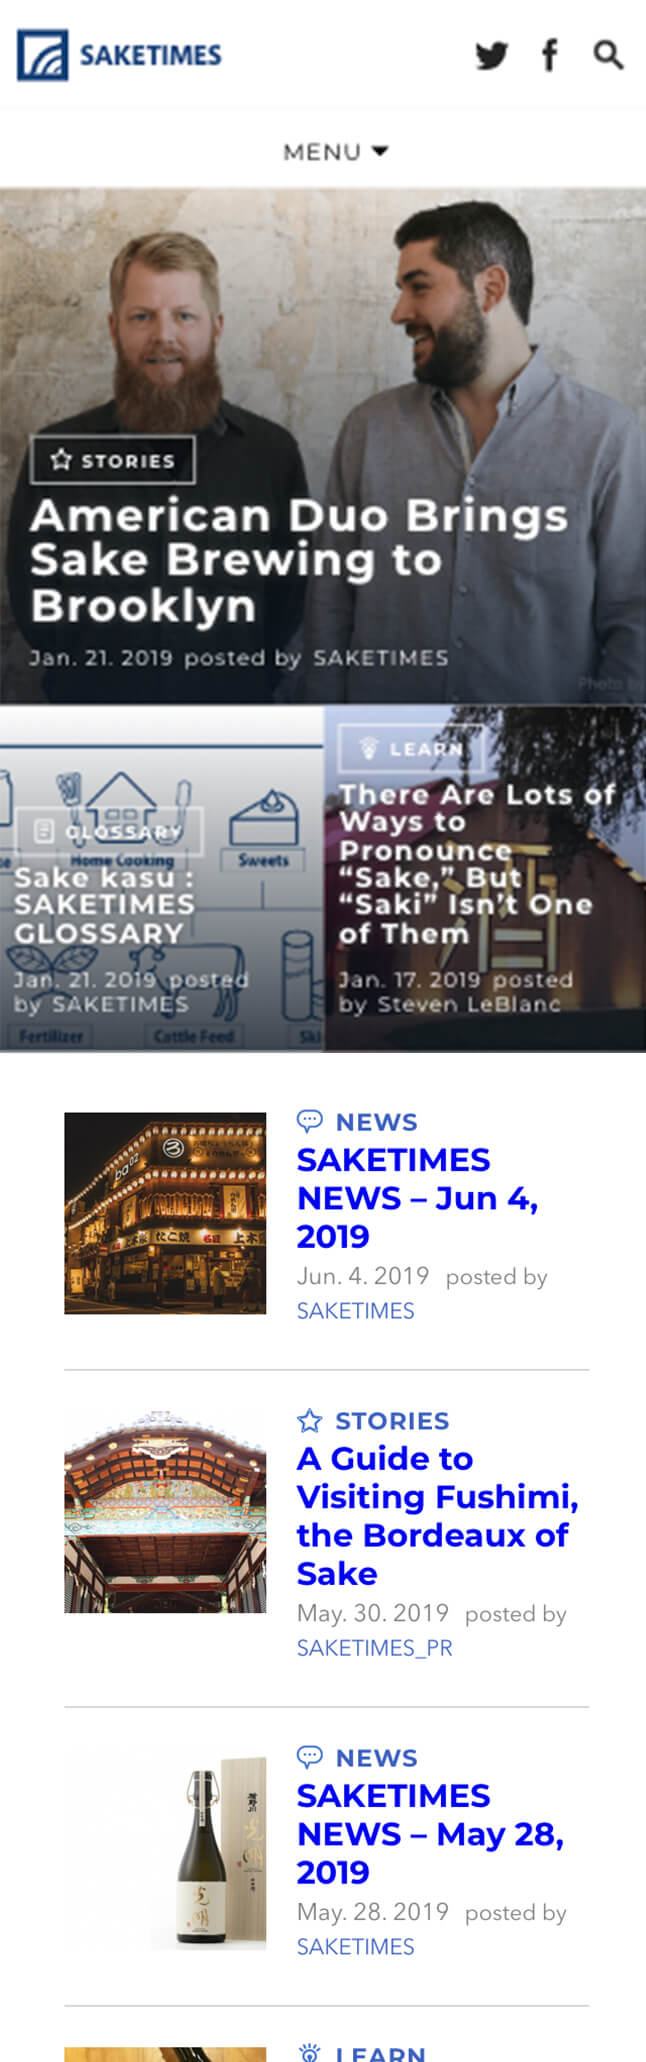 SAKETIMES International